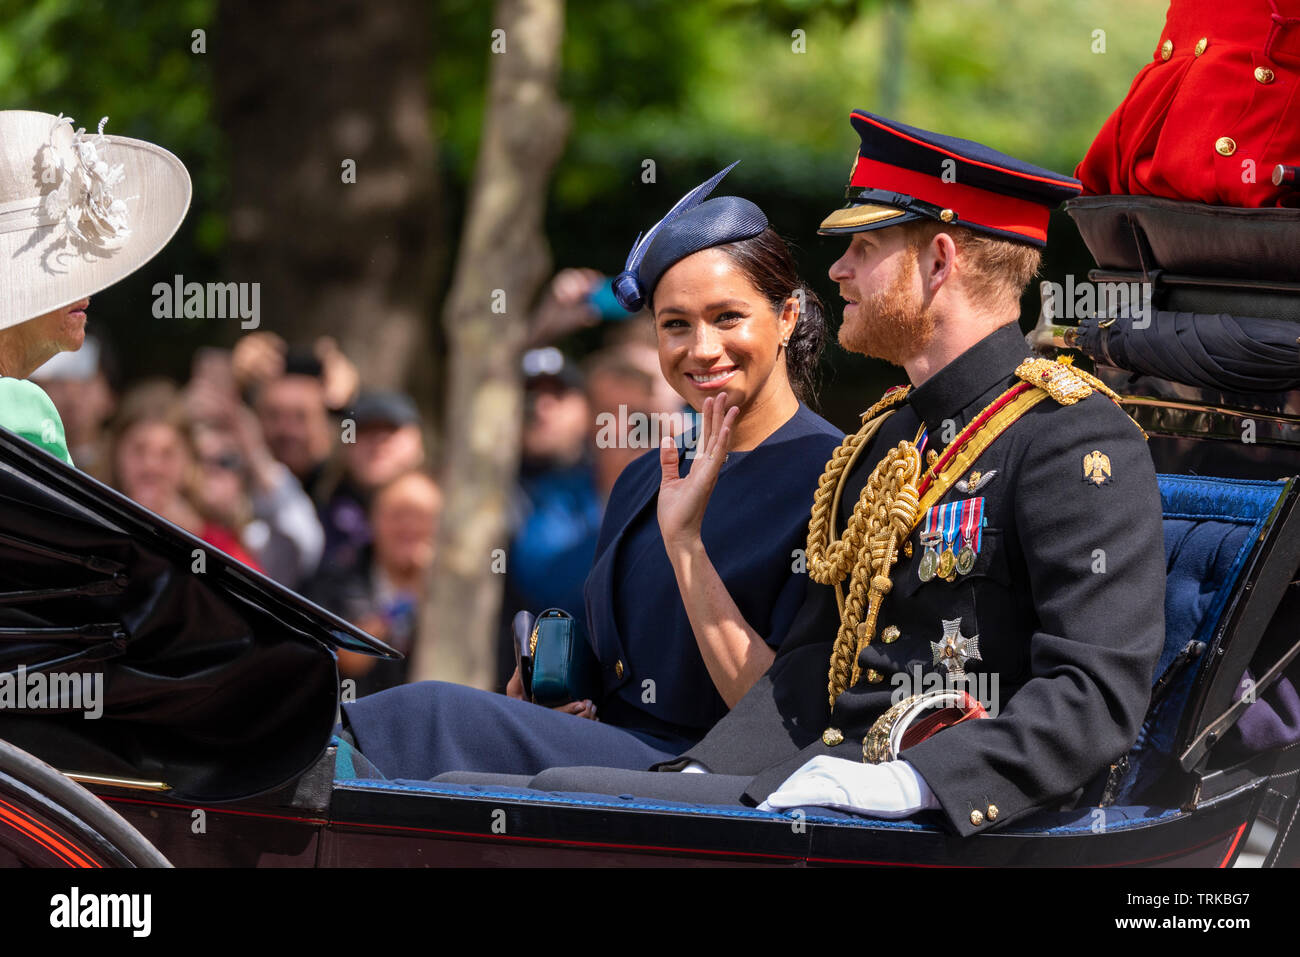 the-royal-family-and-massed-bands-and-troops-have-traveled-down-the-mall-to-horse-guards-parade-for-the-trooping-of-the-colour-2019-meghan-markle-duchess-of-sussex-waving-from-an-open-carriage-with-harry-in-uniform-eye-contact-TRKBG7.jpg